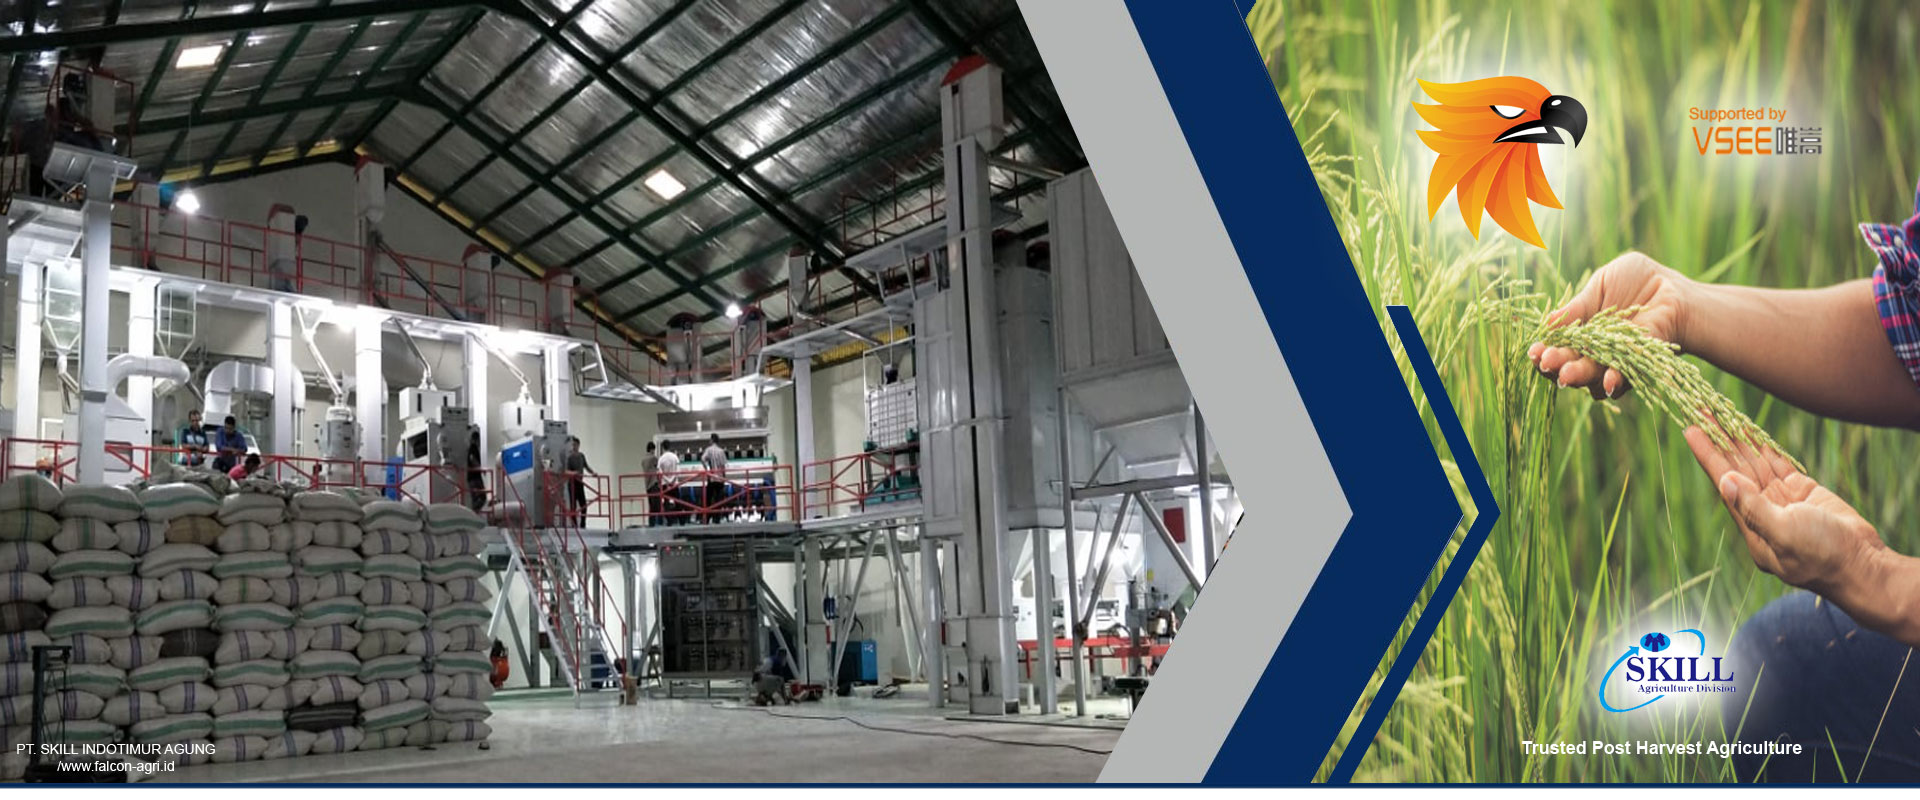 PT. Skill Indotimur Agung, PT Skill Indotimur Agung, PT Skill, PT. Skill, PT Skill Surabaya, pt skill bandung, pt skill jakarta, pt skill indonesia, Dryer, Heating furnace, Cleaner Series, Destoner Series, Rubber Roll Husker Series, Separator Series, Double separator, Vertical Whitener Series, Whitener Series, Mist Polisher Series, Grader Thickness Series, Intelligent CCD Rice Color Sorter, Packing Machine, Flowing Scale , Blending Mixer, Hummer Mill, mesin pertanian, Pabrik mesin pertanian, distributor mesin pertanian, supplier mesin pertanian, mesin pertanian surabaya, mesin pertanian indonesia, mesin pertanian murah, mesin pertanian jakarta, toko mesin pertanian, agen mesin pertanian, agen tunggal mesin pertanian, jual mesin pertanian, harga mesin pertanian, jual mesin pertanian surabaya, harga mesin pertanian surabaya, paddy to rice , paddy to rice machine, jual paddy to rice machine, harga paddy to rice machine, distributor paddy to rice machine, paddy to rice machine surabaya, rice to rice , paska panen , pasca panen , mesin pasca panen , jual mesin pasca panen , harga mesin pasca panen, mesin pasca panen kopi, mesin pasca panen padi, jual mesin pasca panen padi, harga mesin pasca panen padi, distributor mesin pasca panen padi, supplier mesin pasca panen padi, mesin pasca panen padi surabaya, mesin pasca panen padi murah, mesin pasca panen kakao, mesin pasca panen karet, mesin pasca panen jagung, mesin pasca panen pdf, mesin pasca panen adalah, mesin pasca panen kedelai, alat dan mesin pasca panen, mesin pengolah padi, Pabrik mesin pengolah padi, distributor mesin pengolah padi, supplier mesin pengolah padi, mesin pengolah padi surabaya, mesin pengolah padi indonesia, mesin pengolah padi murah, mesin pengolah padi jakarta, toko mesin pengolah padi, agen mesin pengolah padi, agen tunggal mesin pengolah padi, jual mesin pengolah padi, harga mesin pengolah padi, jual mesin pengolah padi surabaya, harga mesin pengolah padi surabaya, jual mesin padi , harga mesin p